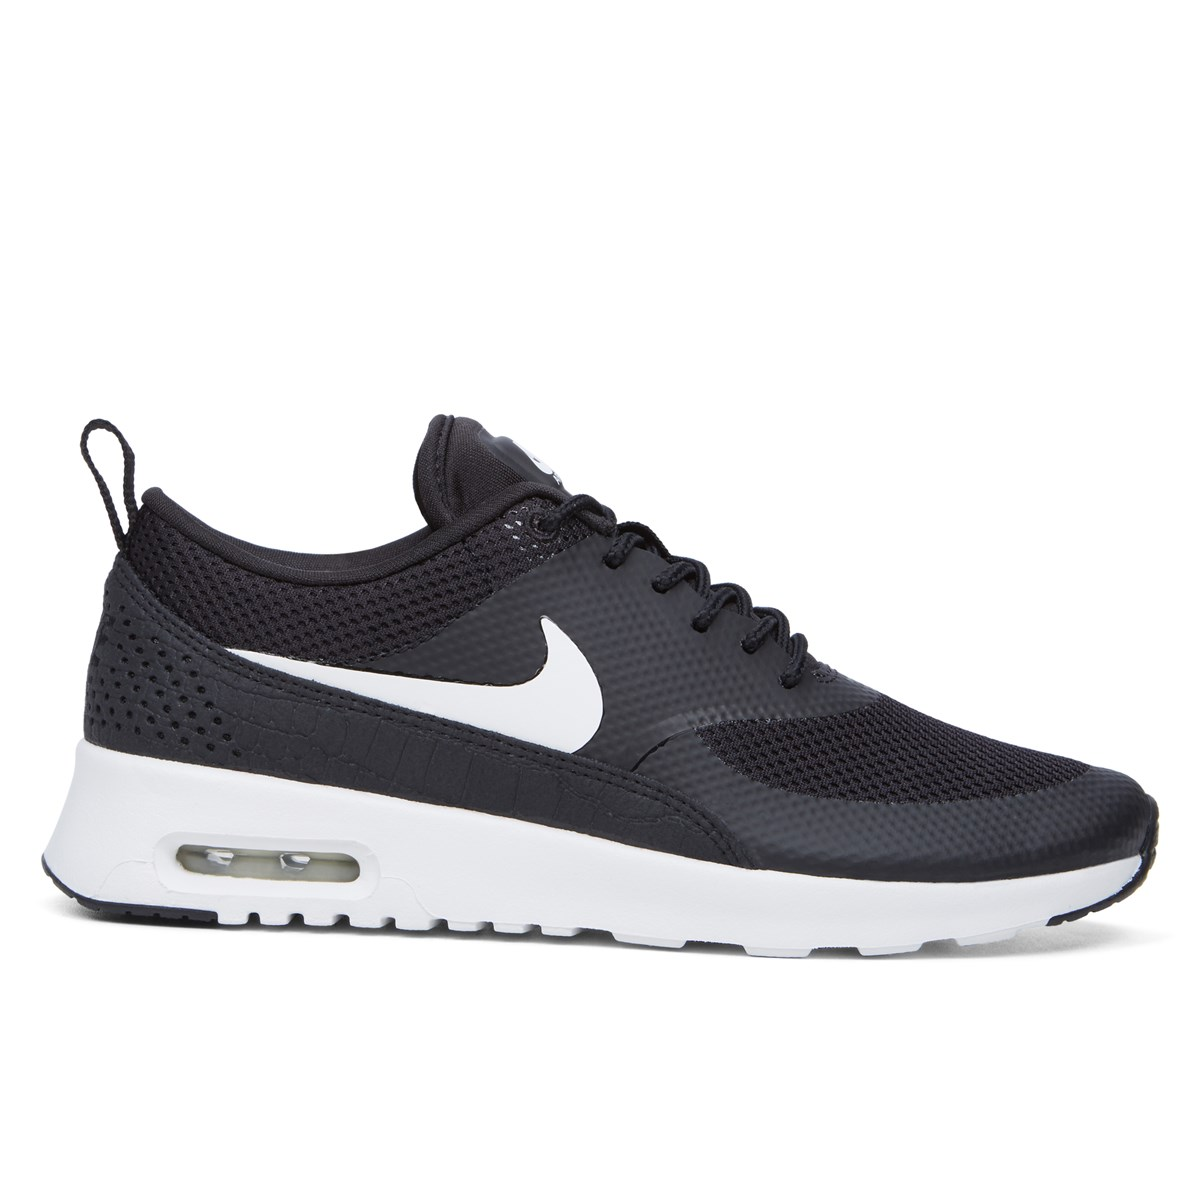 93756eabc3f0 Women s Air Max Thea Black Sneaker. Previous. default view  ALT1  ALT2